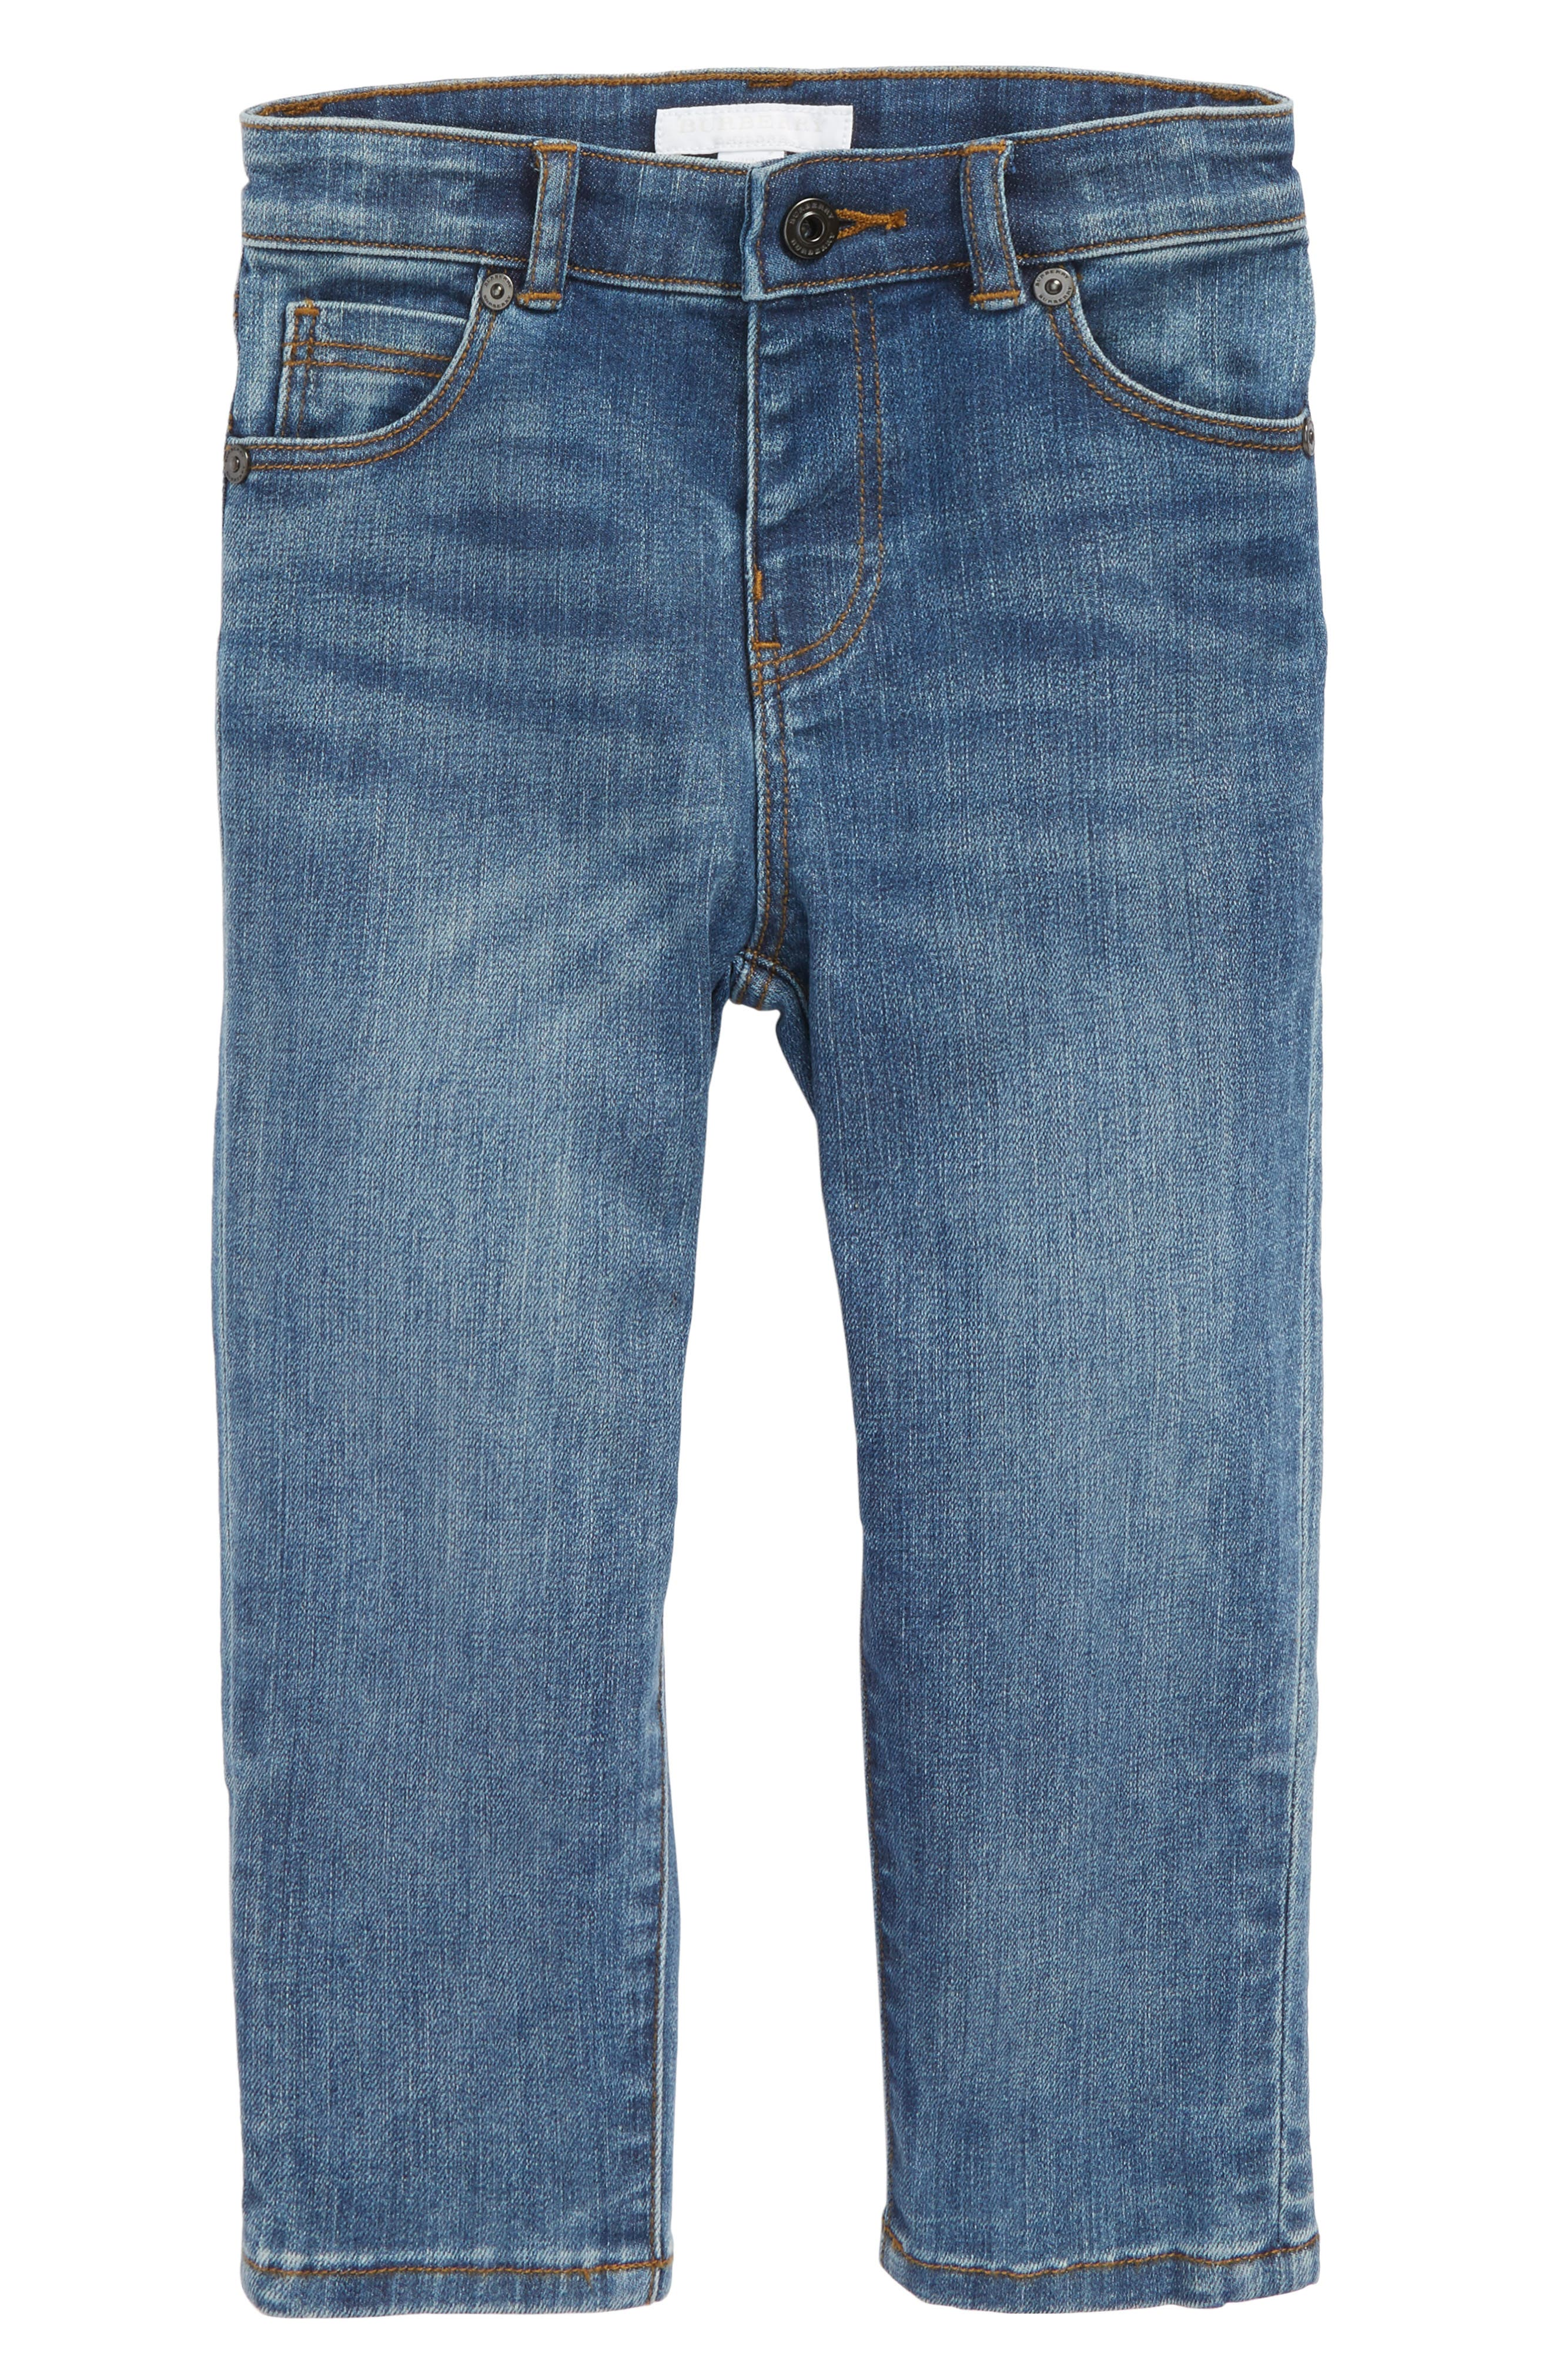 Skinny Jeans,                         Main,                         color, 412